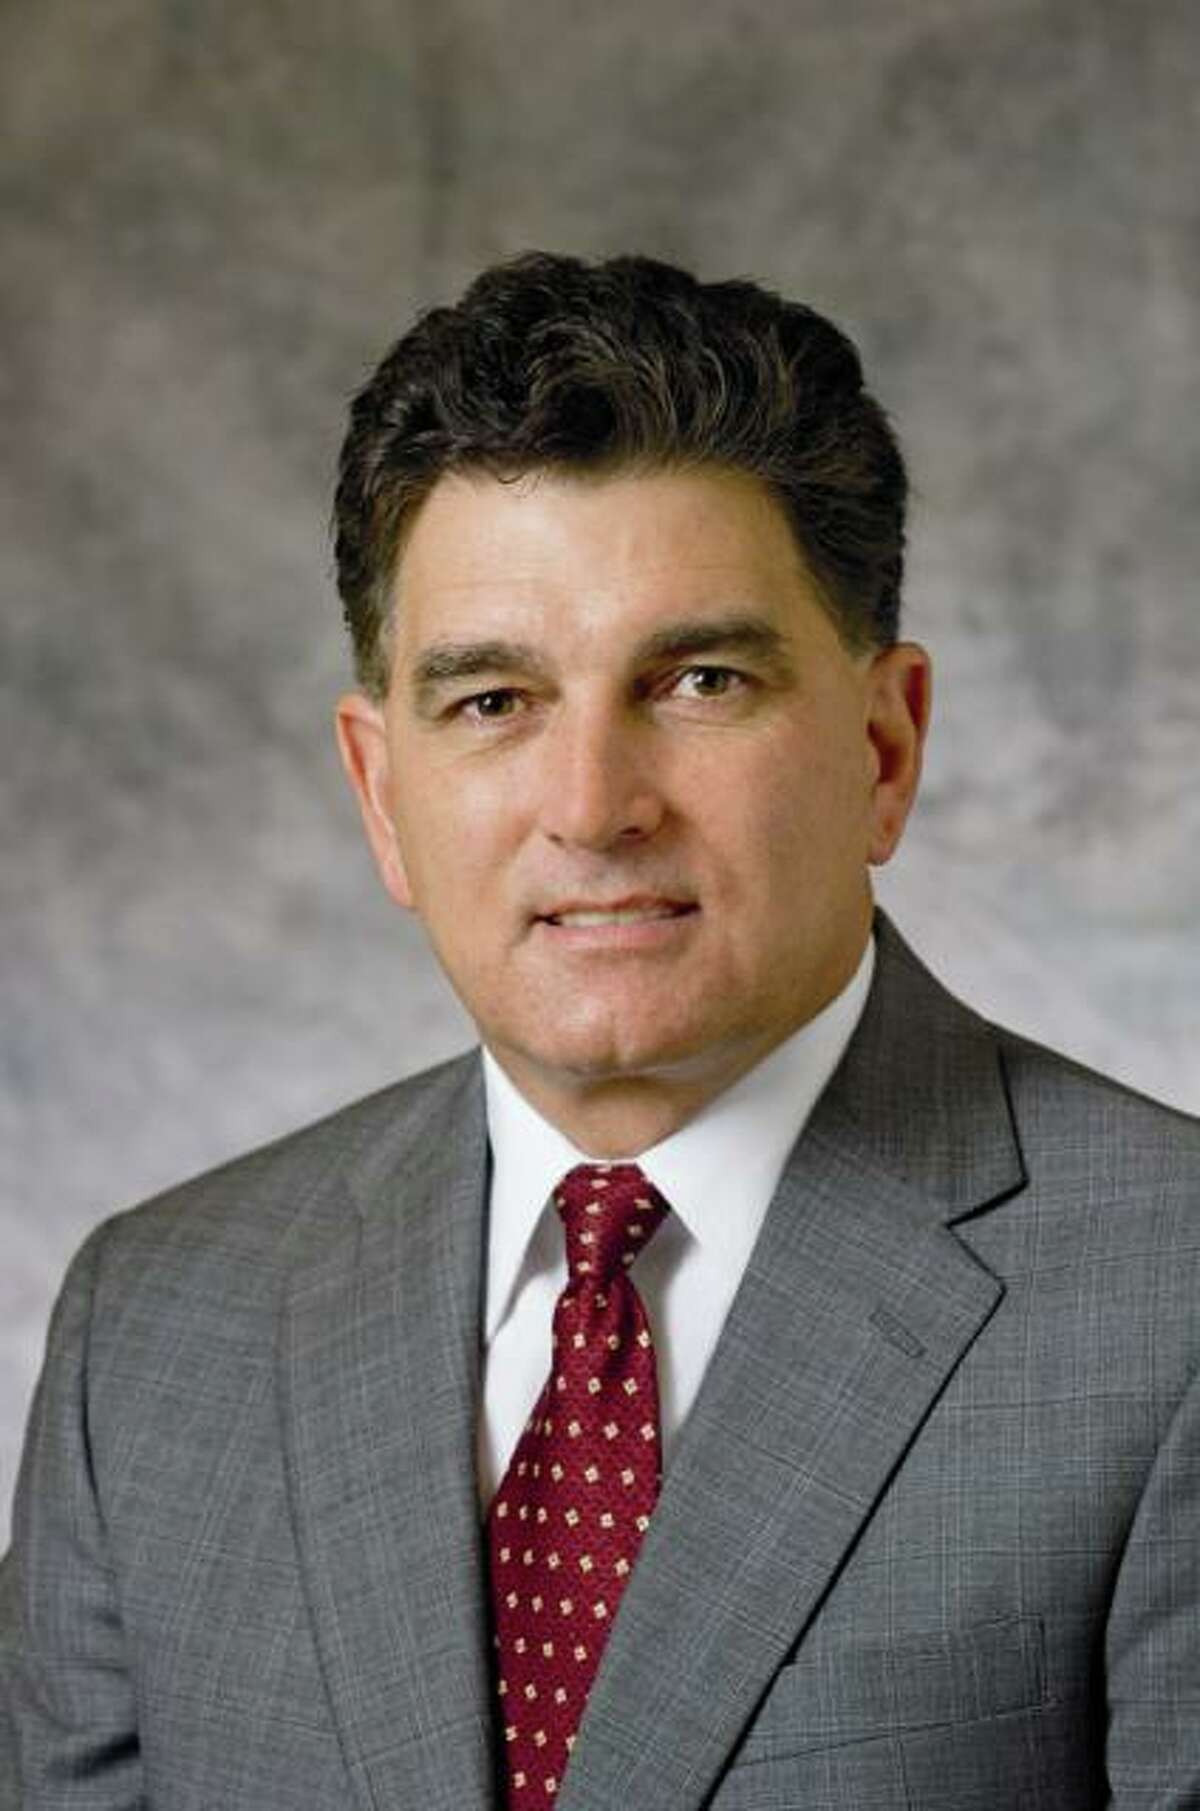 GREG GOFF is leaving Conoco-Phillips to lead Tesoro. Courtesy photo *** Tesoro Corp. changed their name to Andeavor Corp. on Aug. 1, 2017. ***